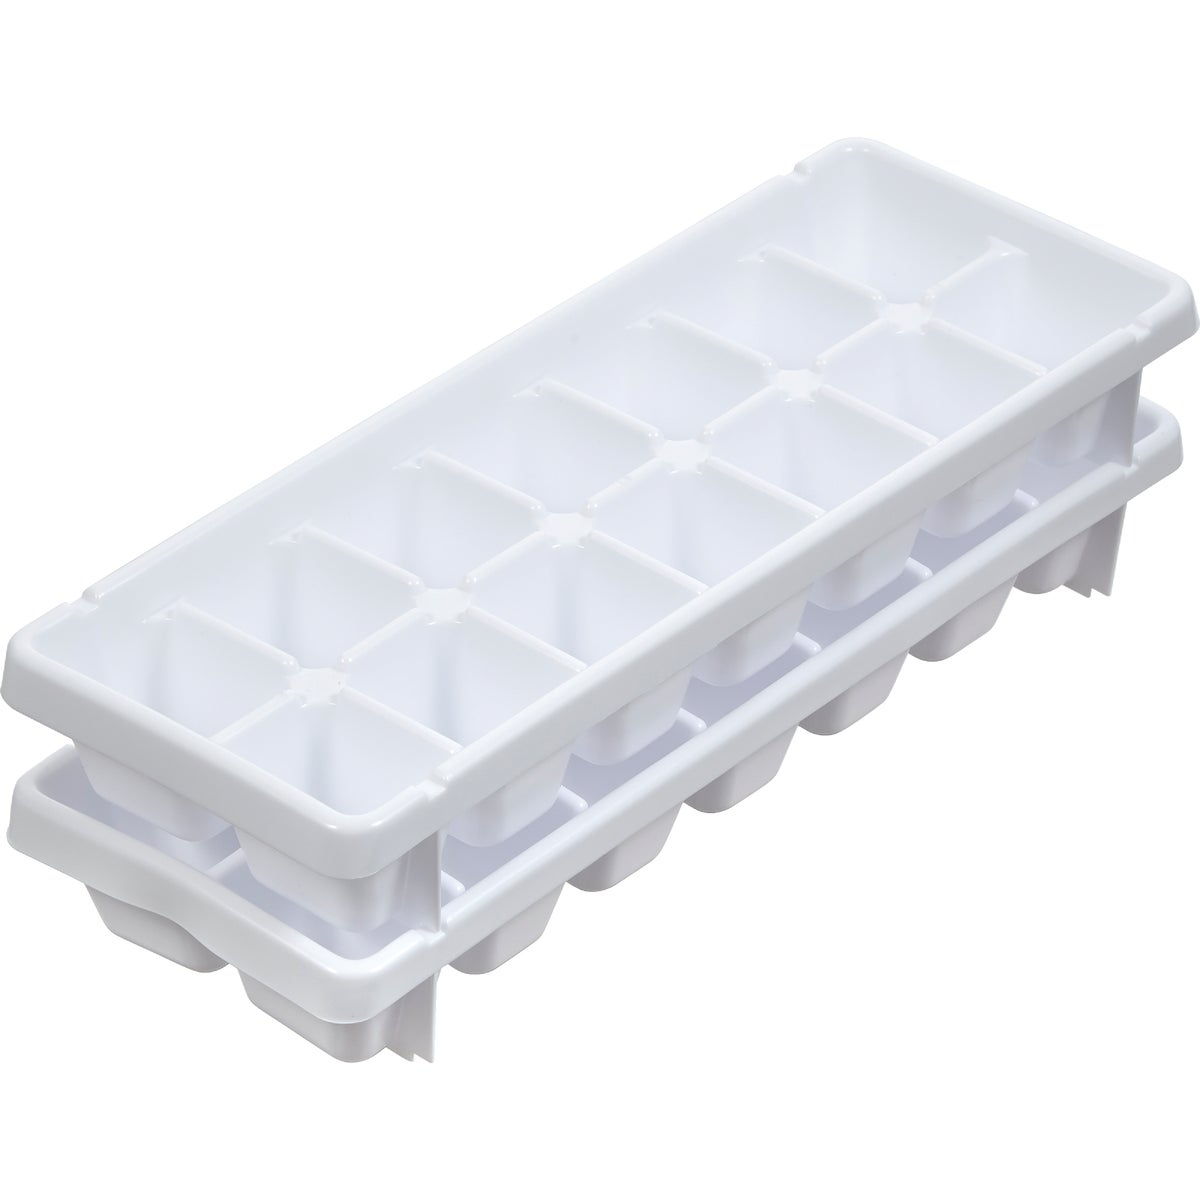 2 ICE CUBE TRAYS - 00050 by Arrow Plastic Mfg Co